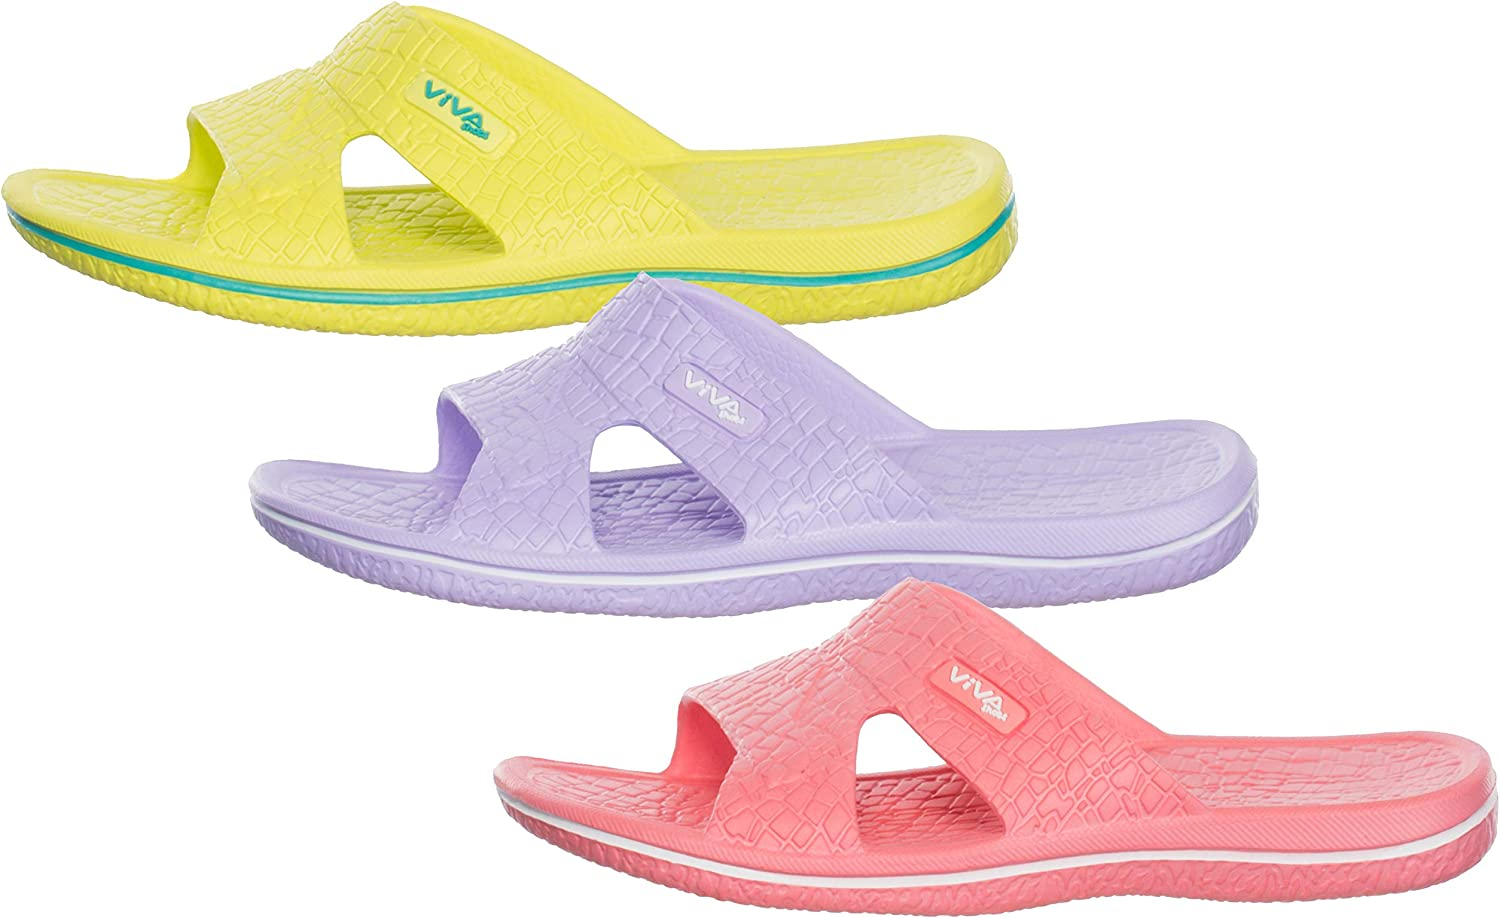 Mint Turquoise and Lemon Size 3-7 White Lilac Womens Bathing Slippers Beach Shoes Coral